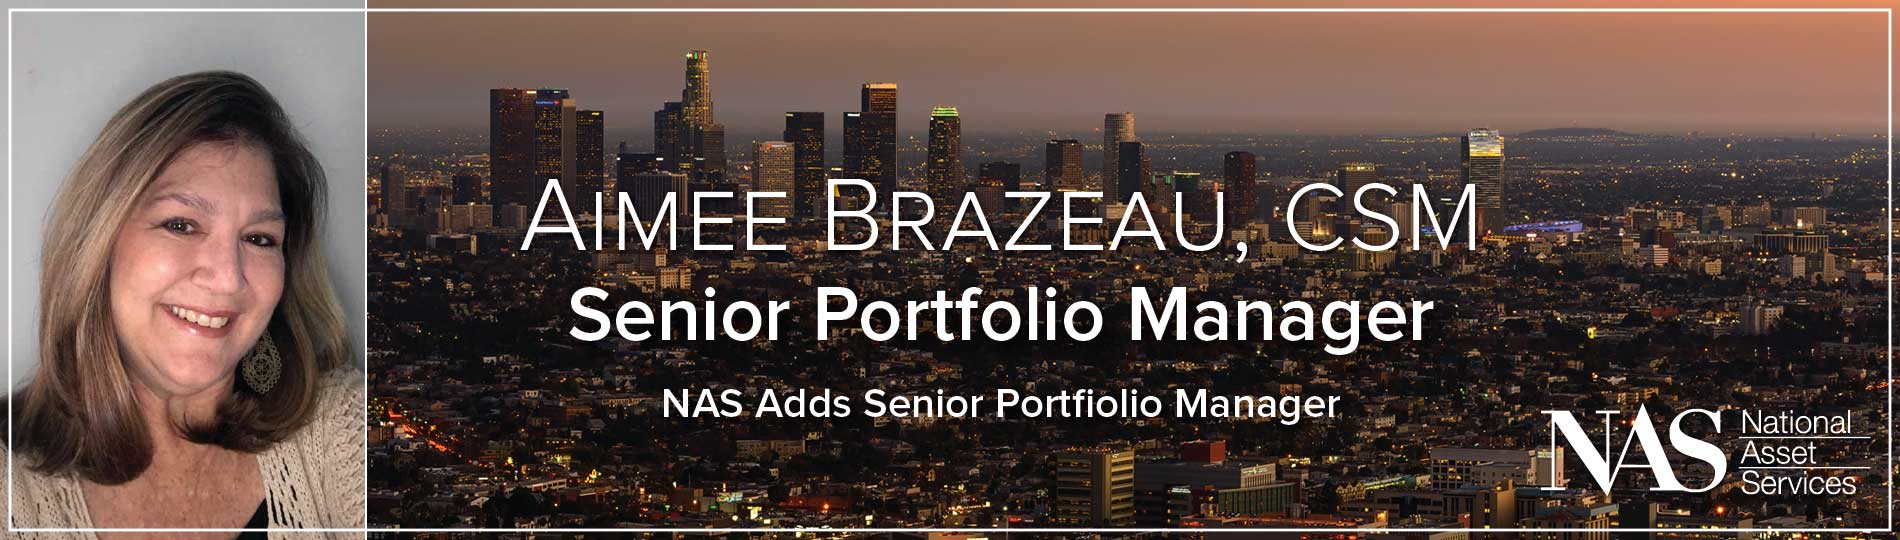 Aimee Brazeau has been added to the NAS management team as a Senior Portfolio Manager.